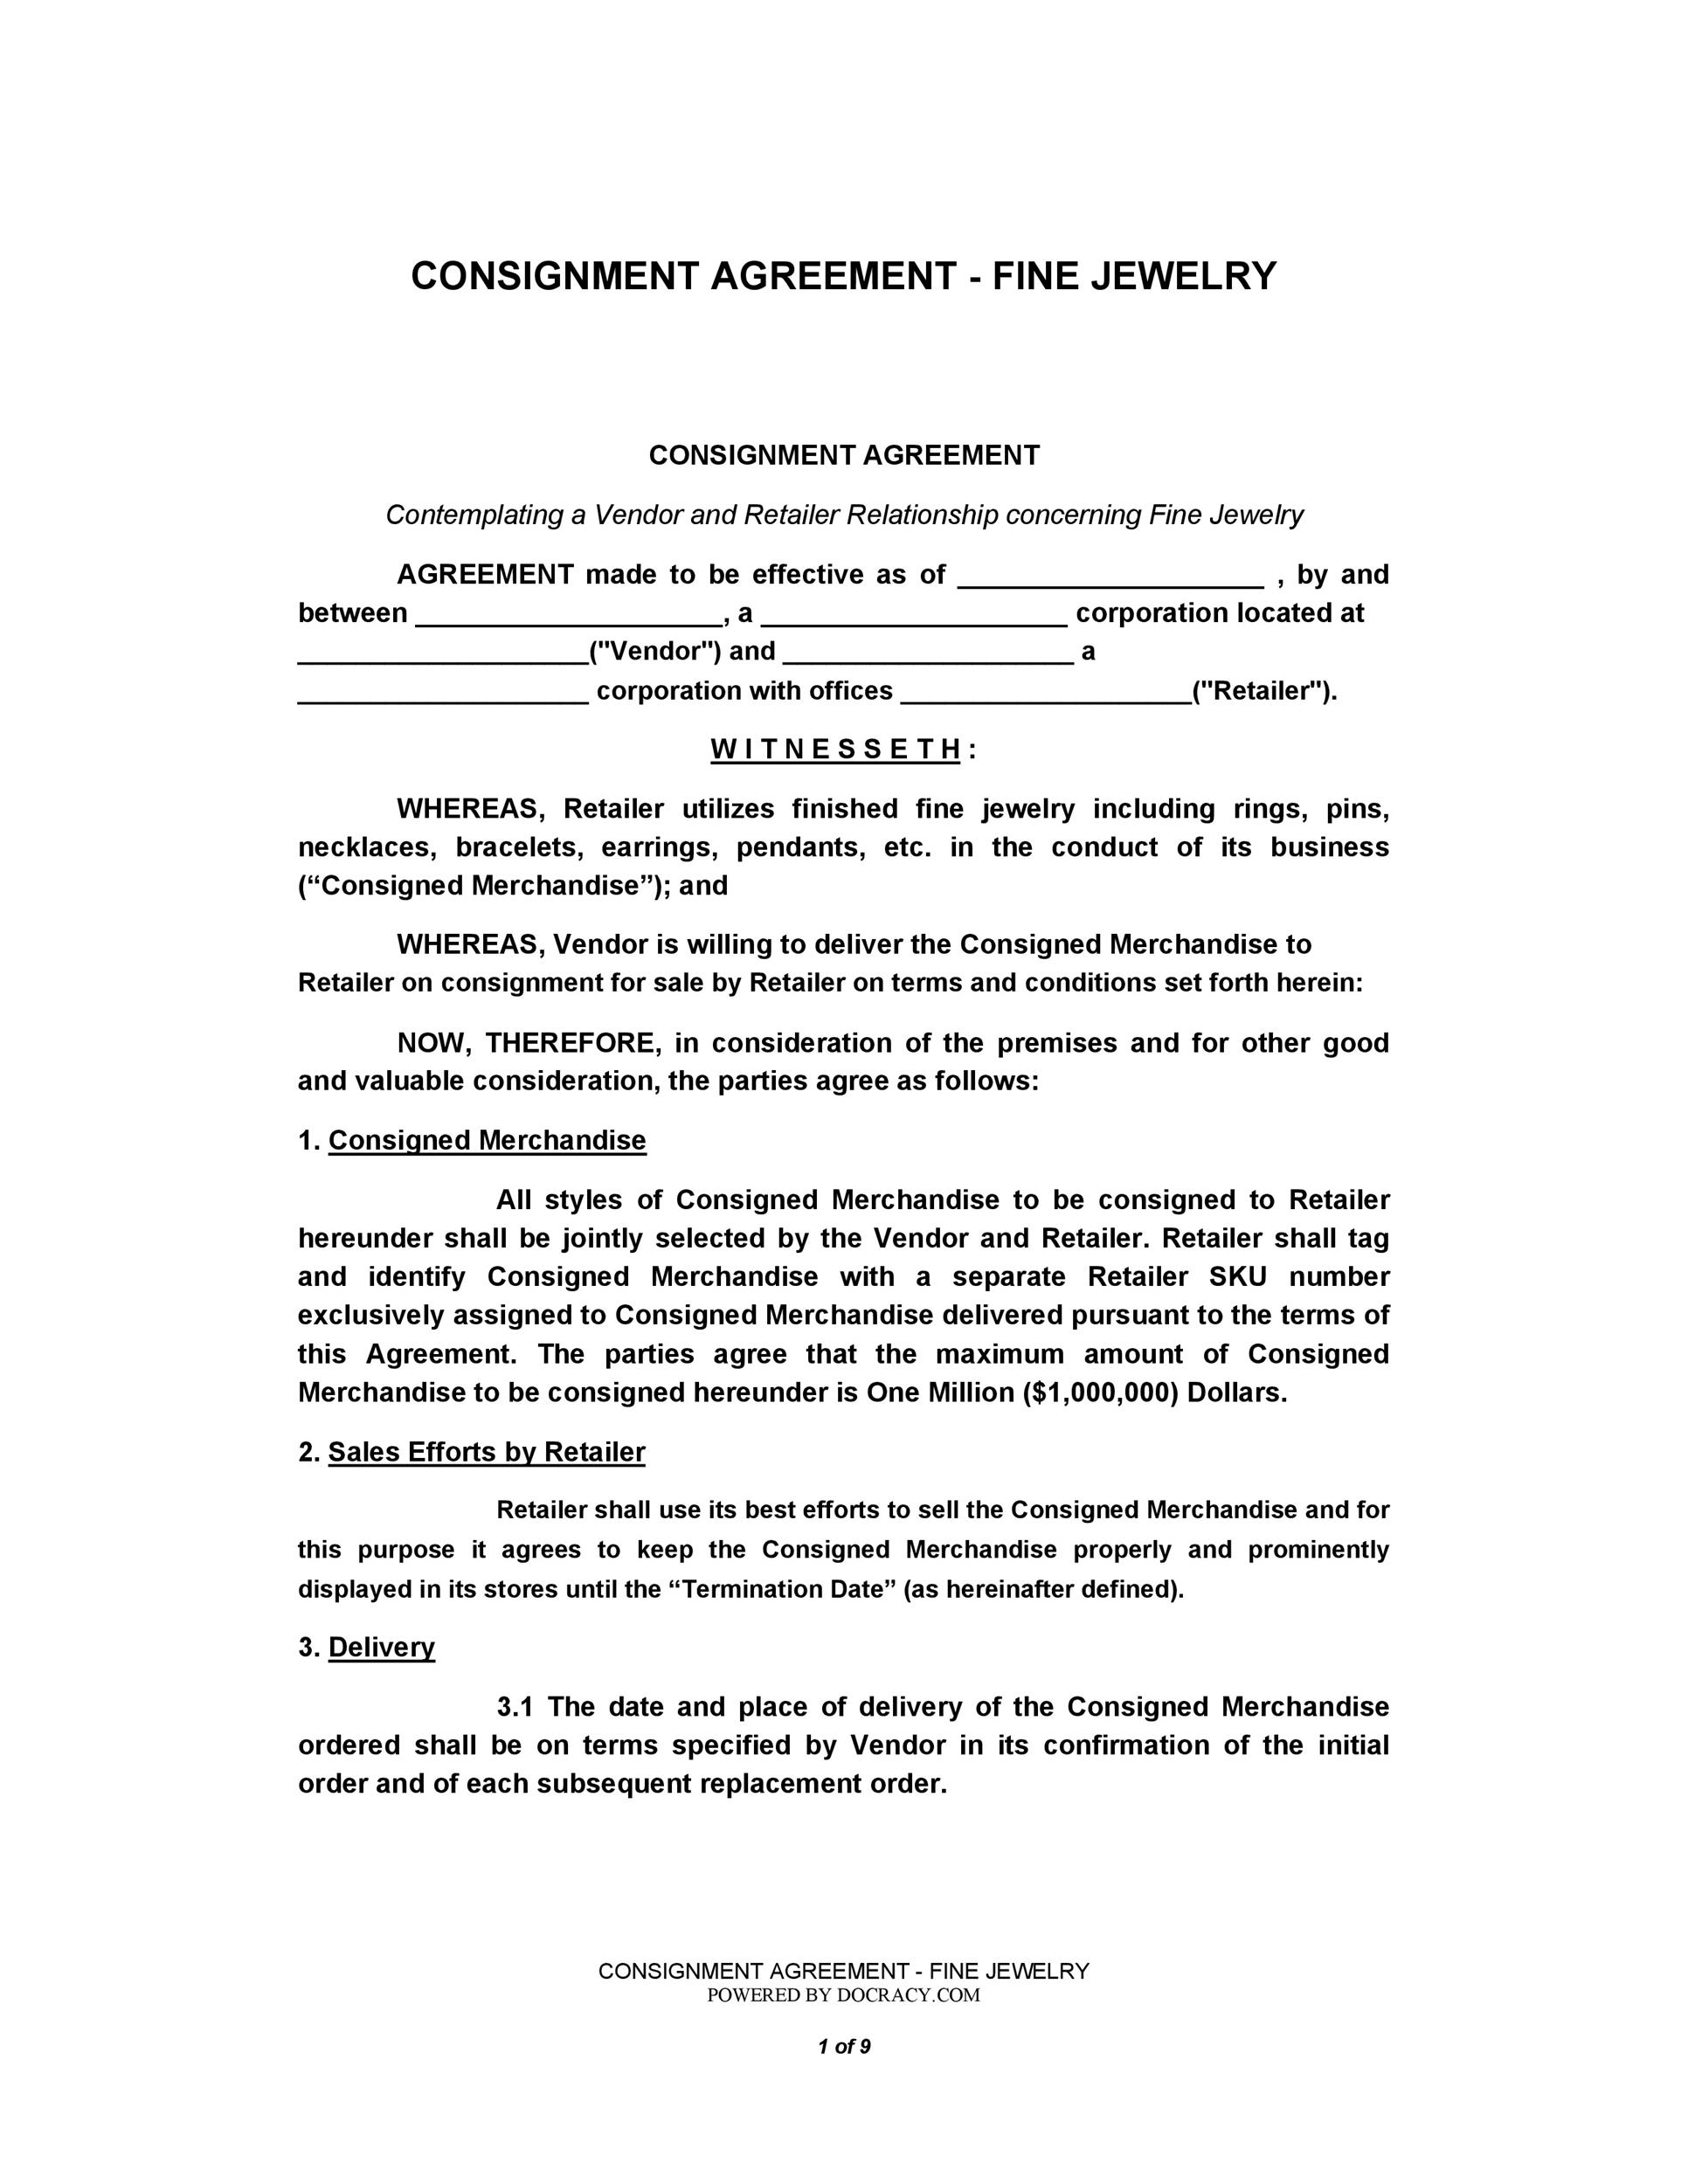 40+ Best Consignment Agreement Templates  Forms - Template Lab